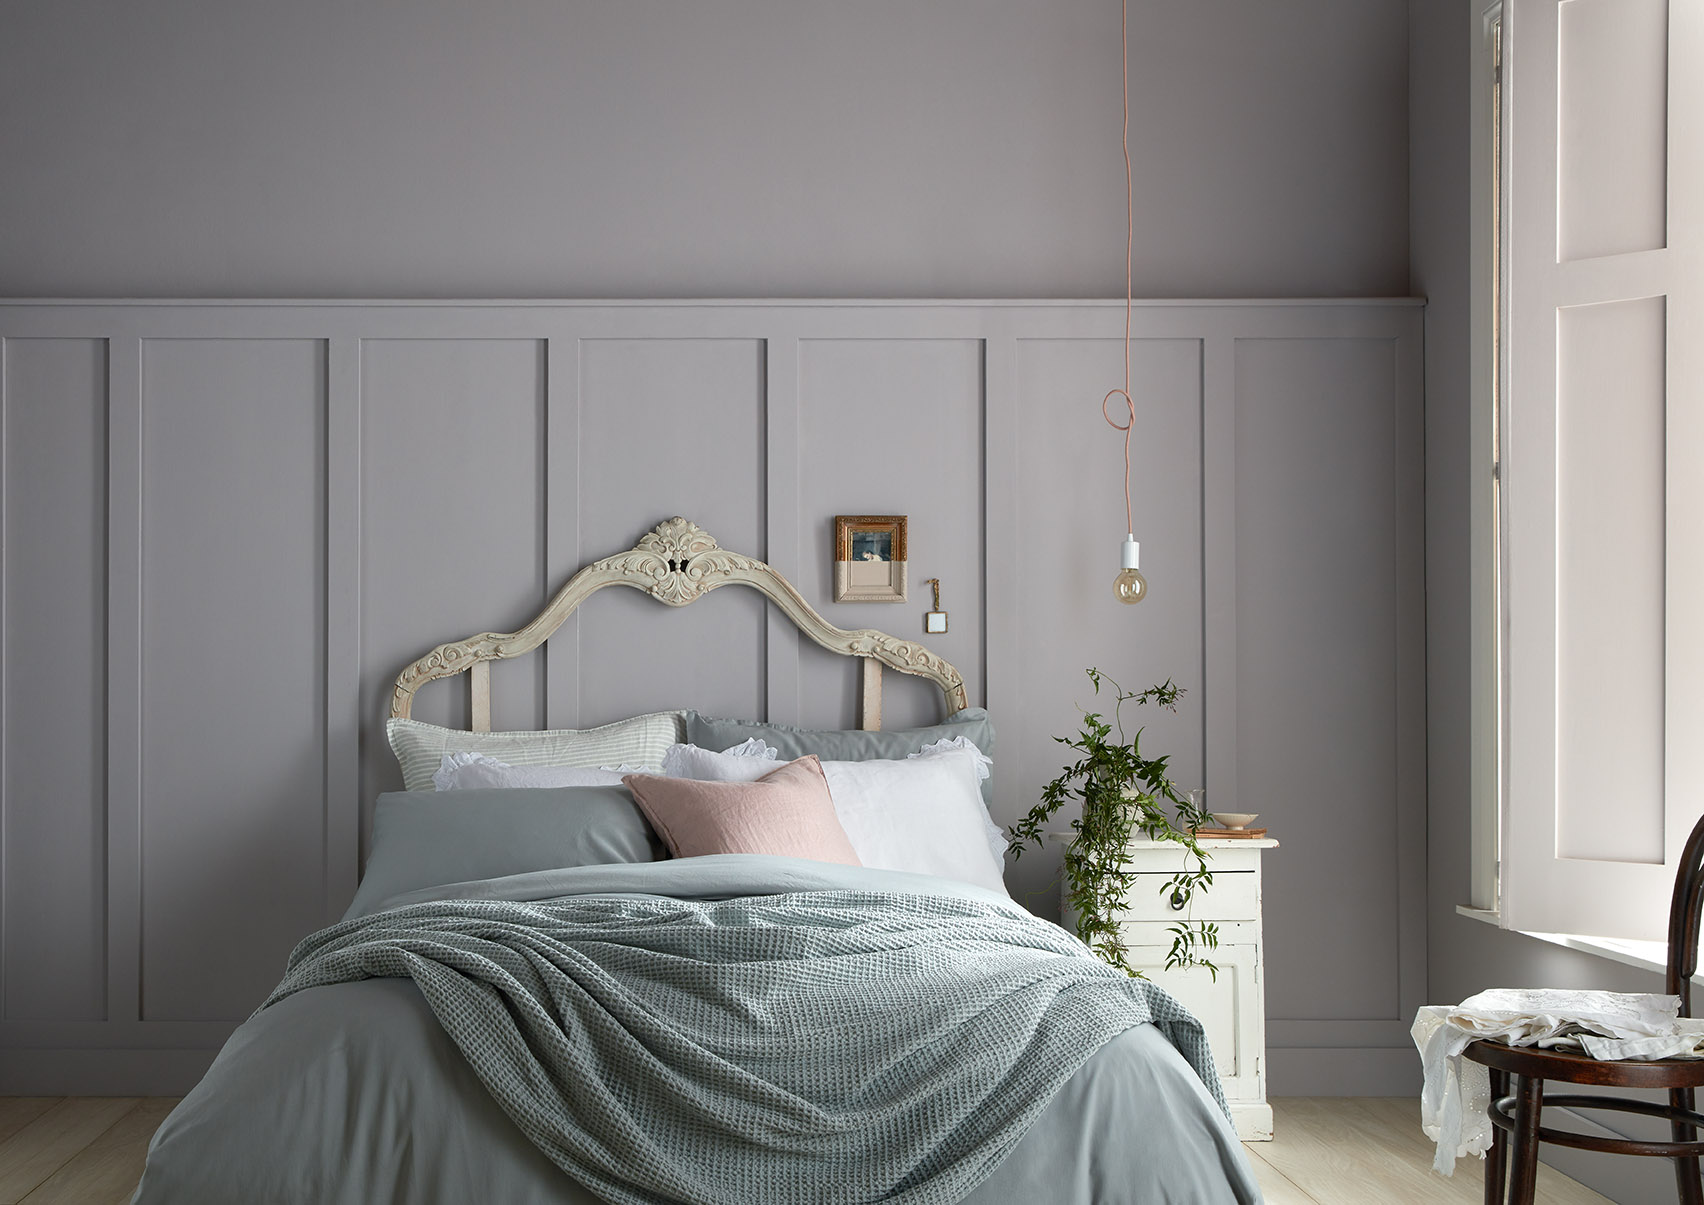 Gloaming from our new Modern Country Colours rnage is the perfect backdrop to a calm bedroom